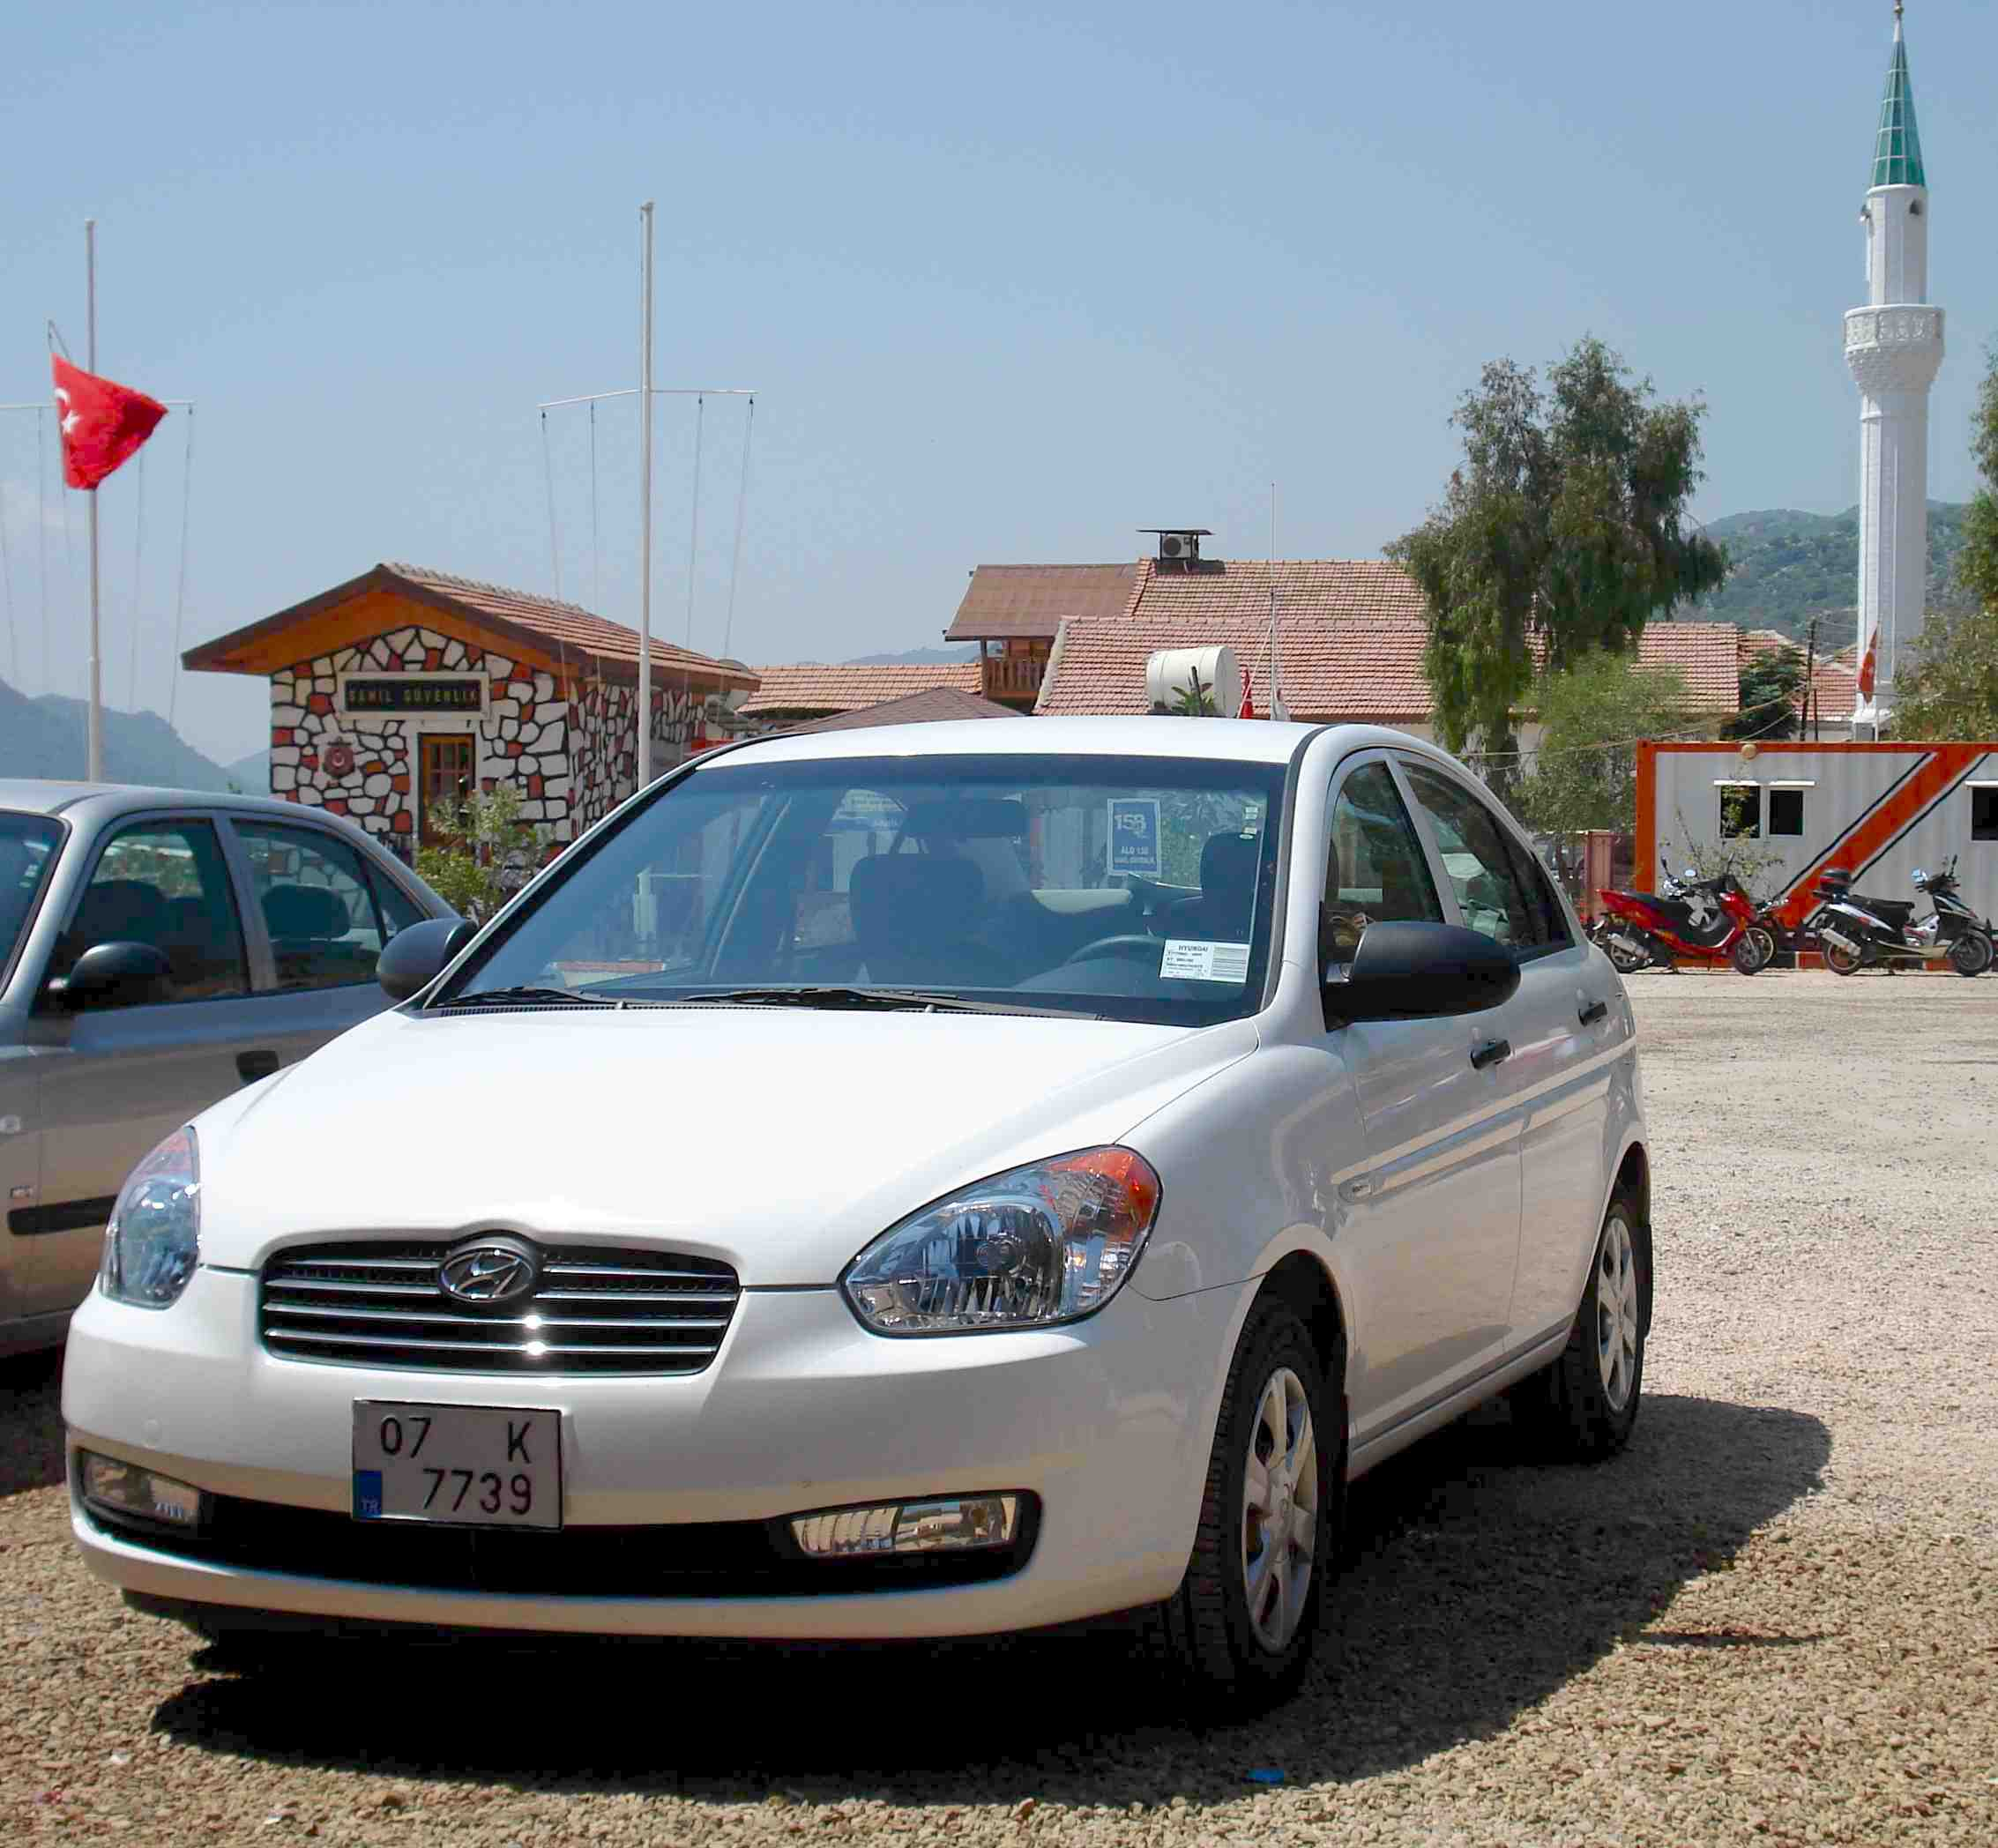 Top Superior State Cars Of World Leaders: Turkey 2009: Hyundai Accent Distant Leader, Fluence Starts